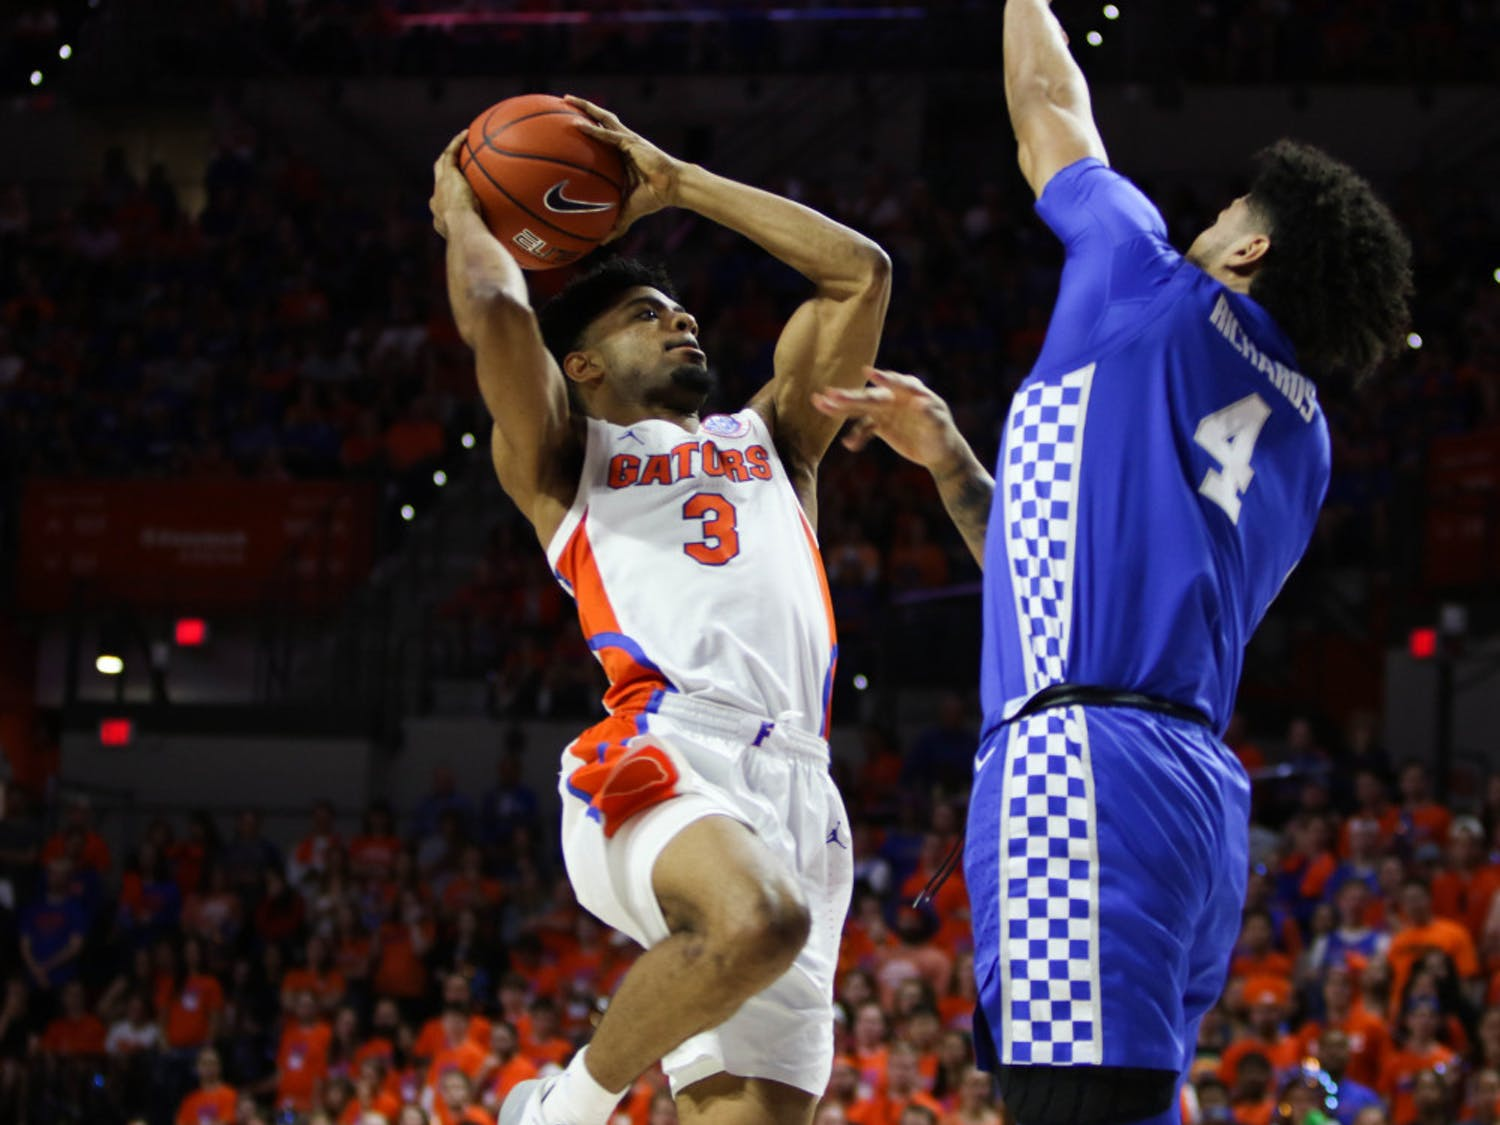 Senior guard Jalen Hudson's 11 points in the Gators' 65-54 loss to Kentucky were his highest total since Butler (Dec. 29) and the first time this year he'd reached double figures in SEC play.